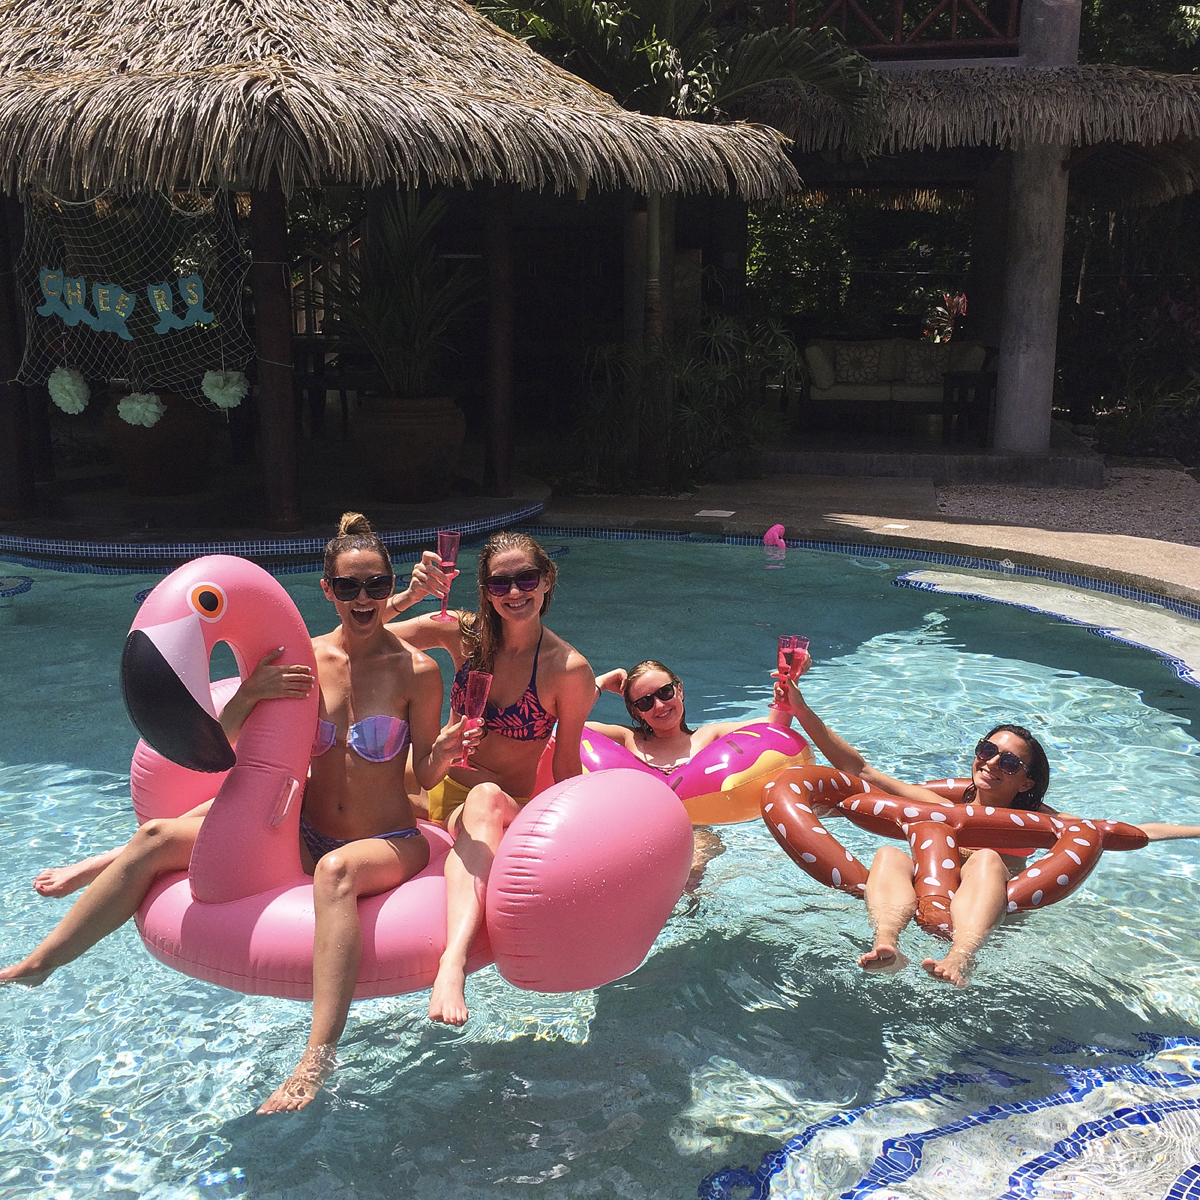 livvyland-blog-olivia-watson-costa-rica-bachelorette-destination-vacation-getaway-beach-where-to-go-big-group-mermaid-party-nosara-casa-de-alces-inflatable-flamingo